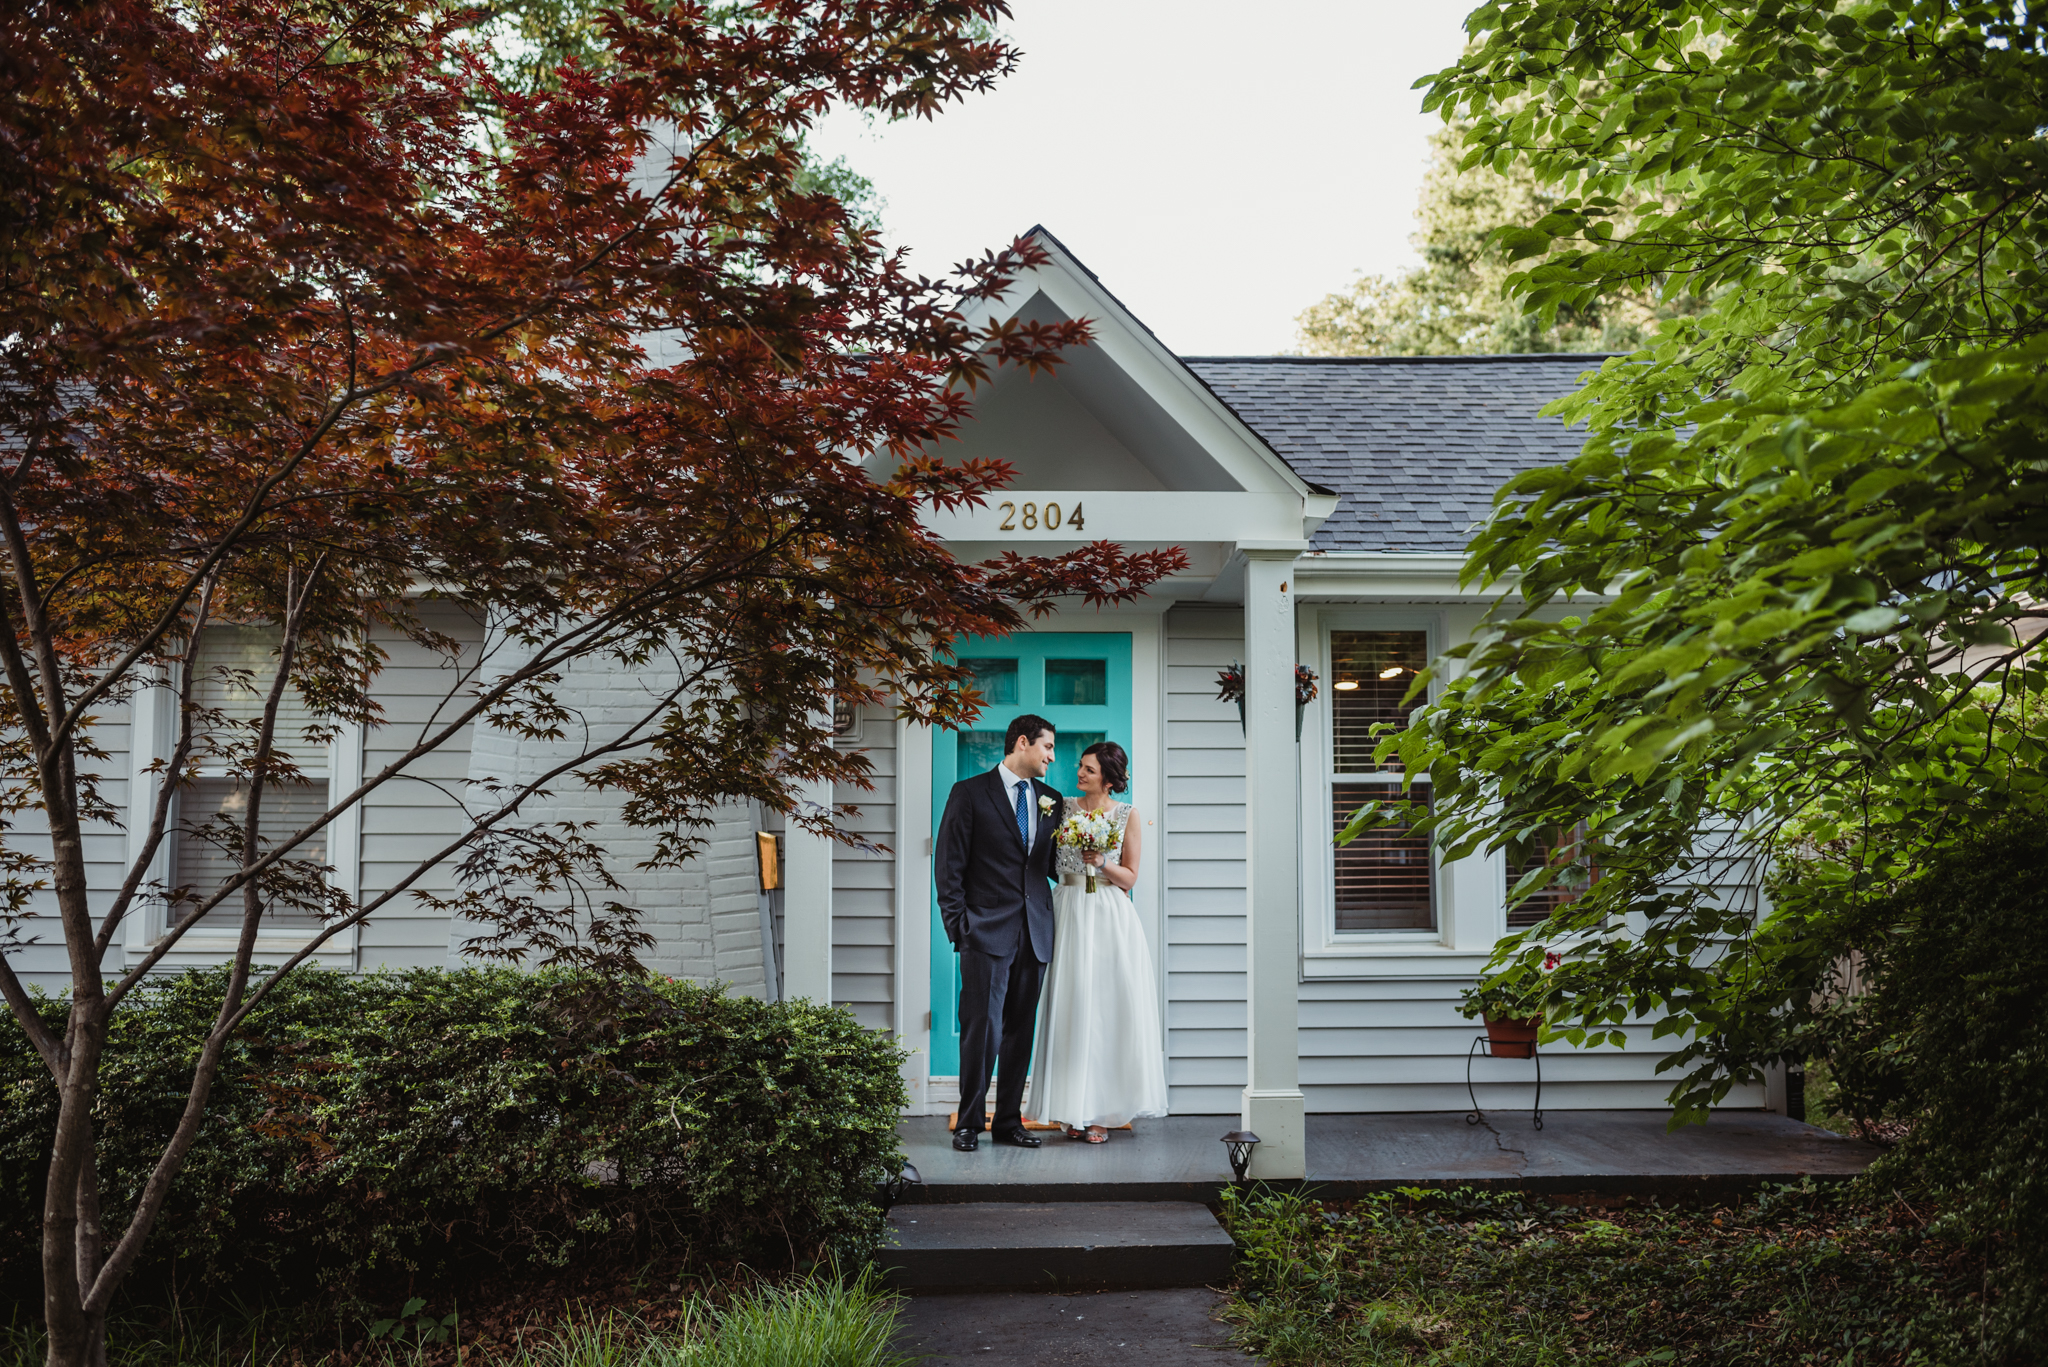 Raleigh-wedding-photographer-bride-and-groom-portraits-at-home-intimate-rose-trail-images.jpg